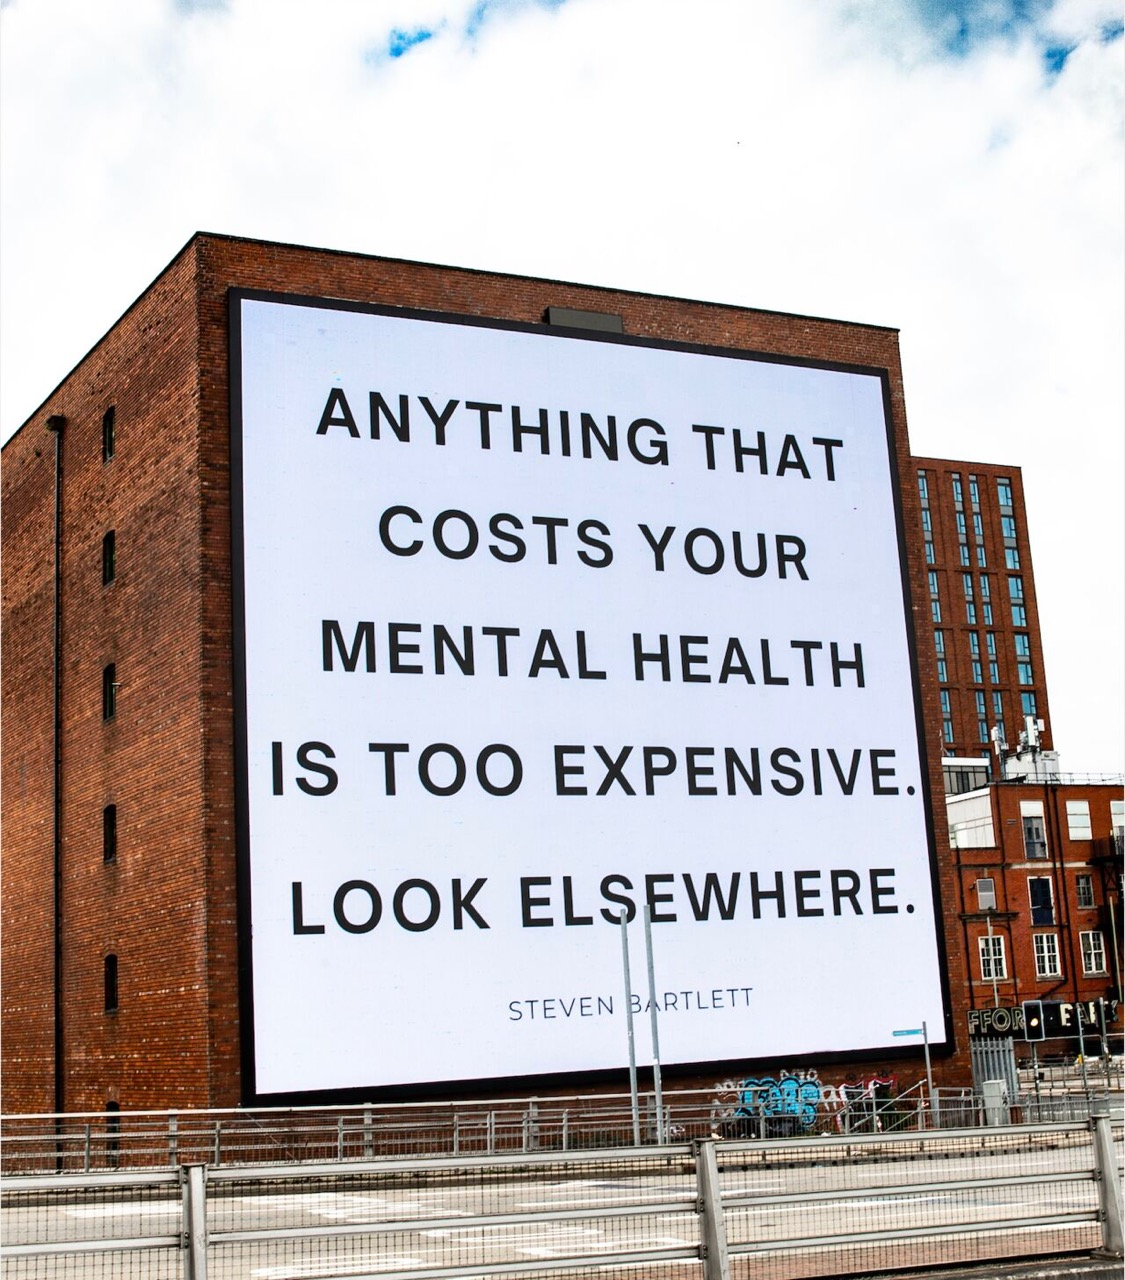 Billboard with motivational message about mental health